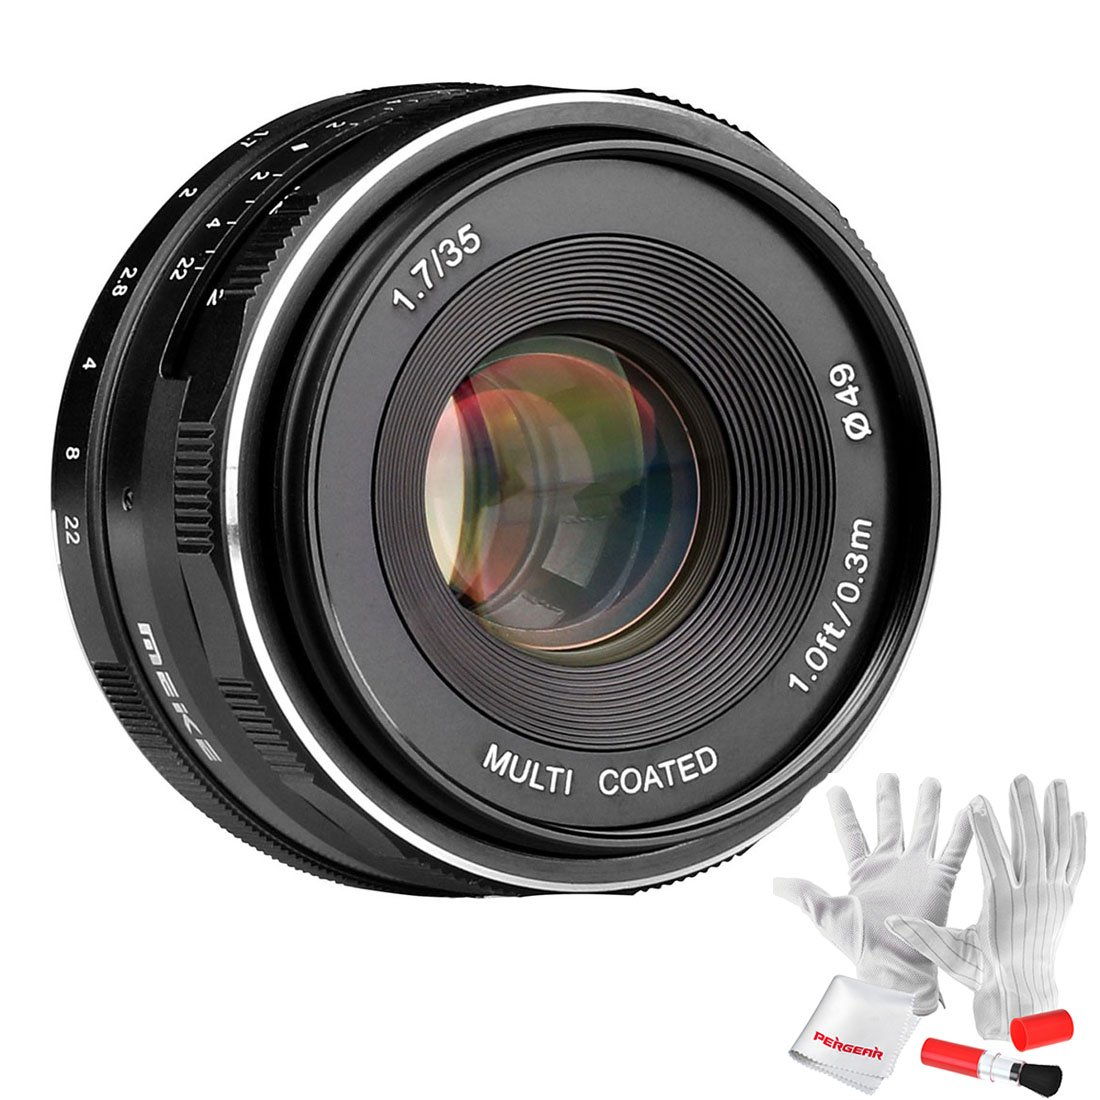 Meike 35mm F1.7 Manual Focus Large Aperture Prime Fixed Metal Lens for Fujifilm APS-C Mirrorless Cameras - Black by Meike